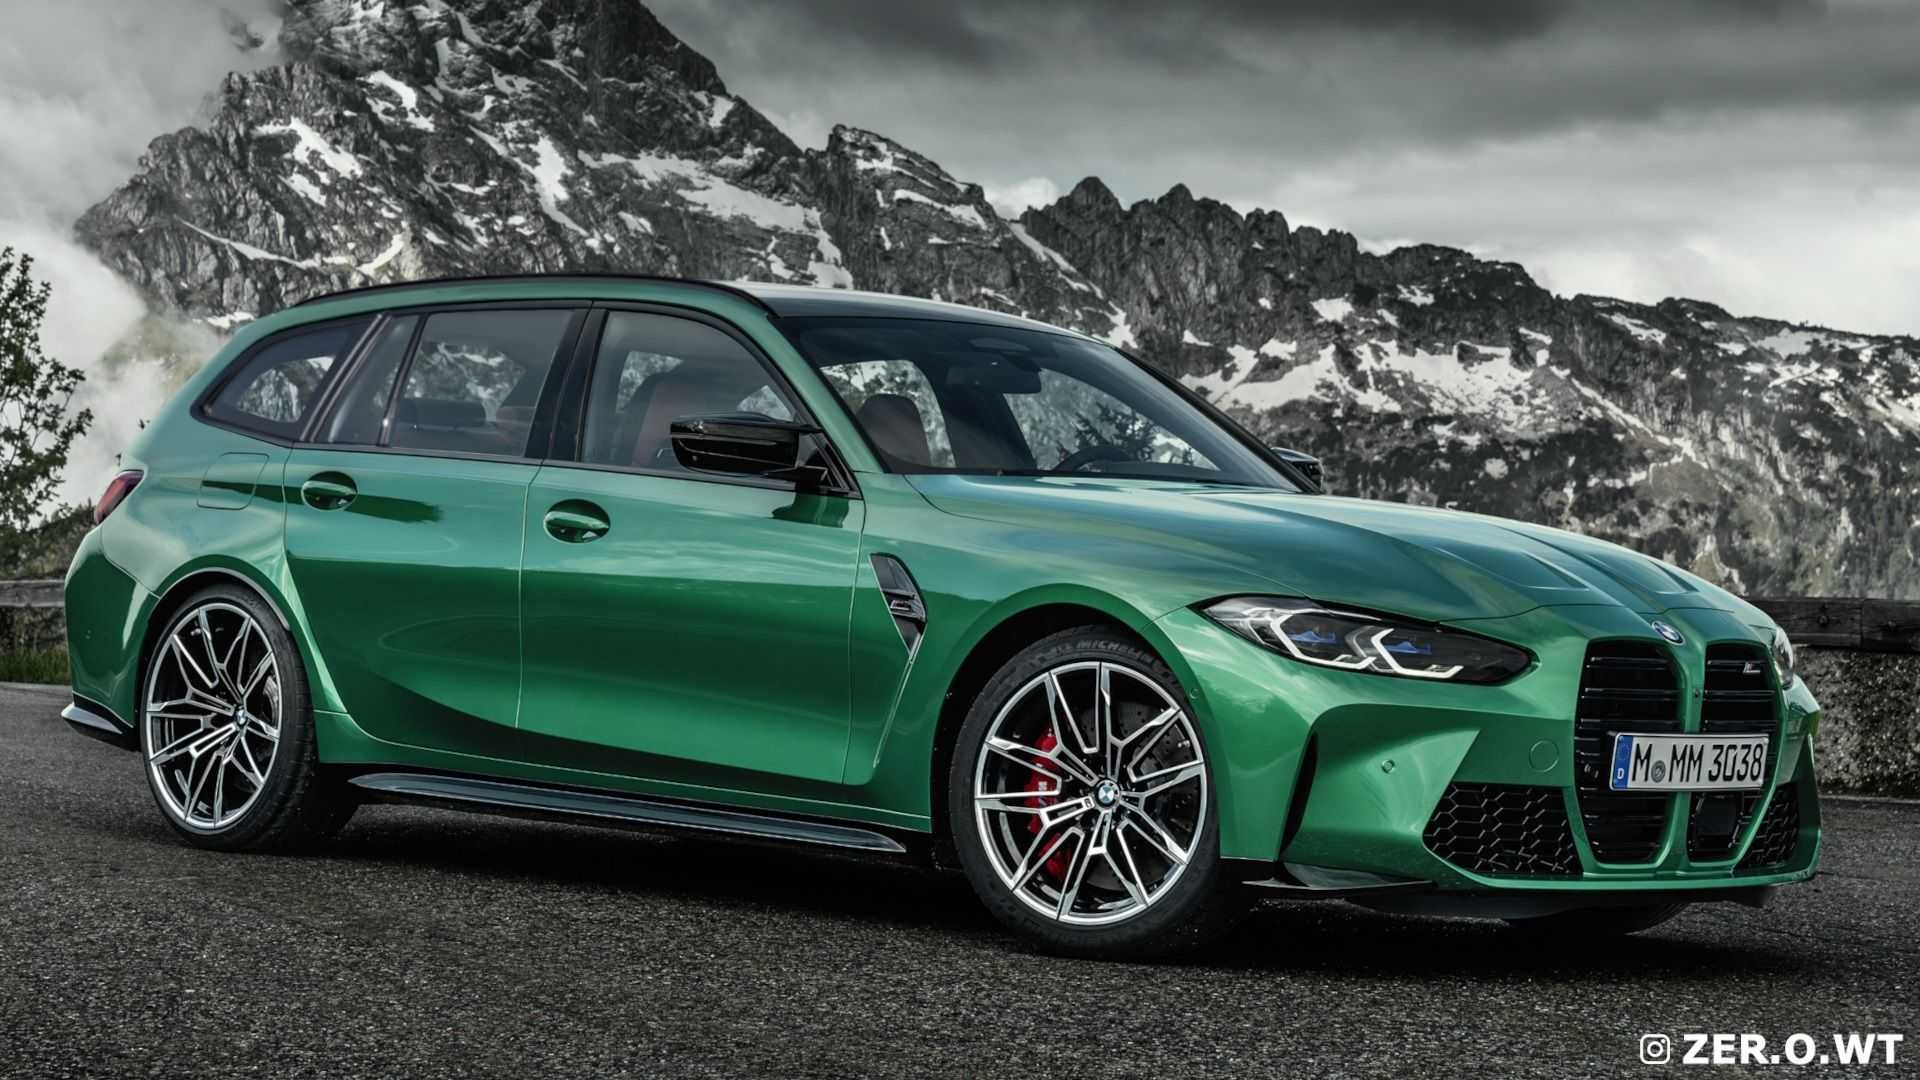 m3-touring-color-render-10